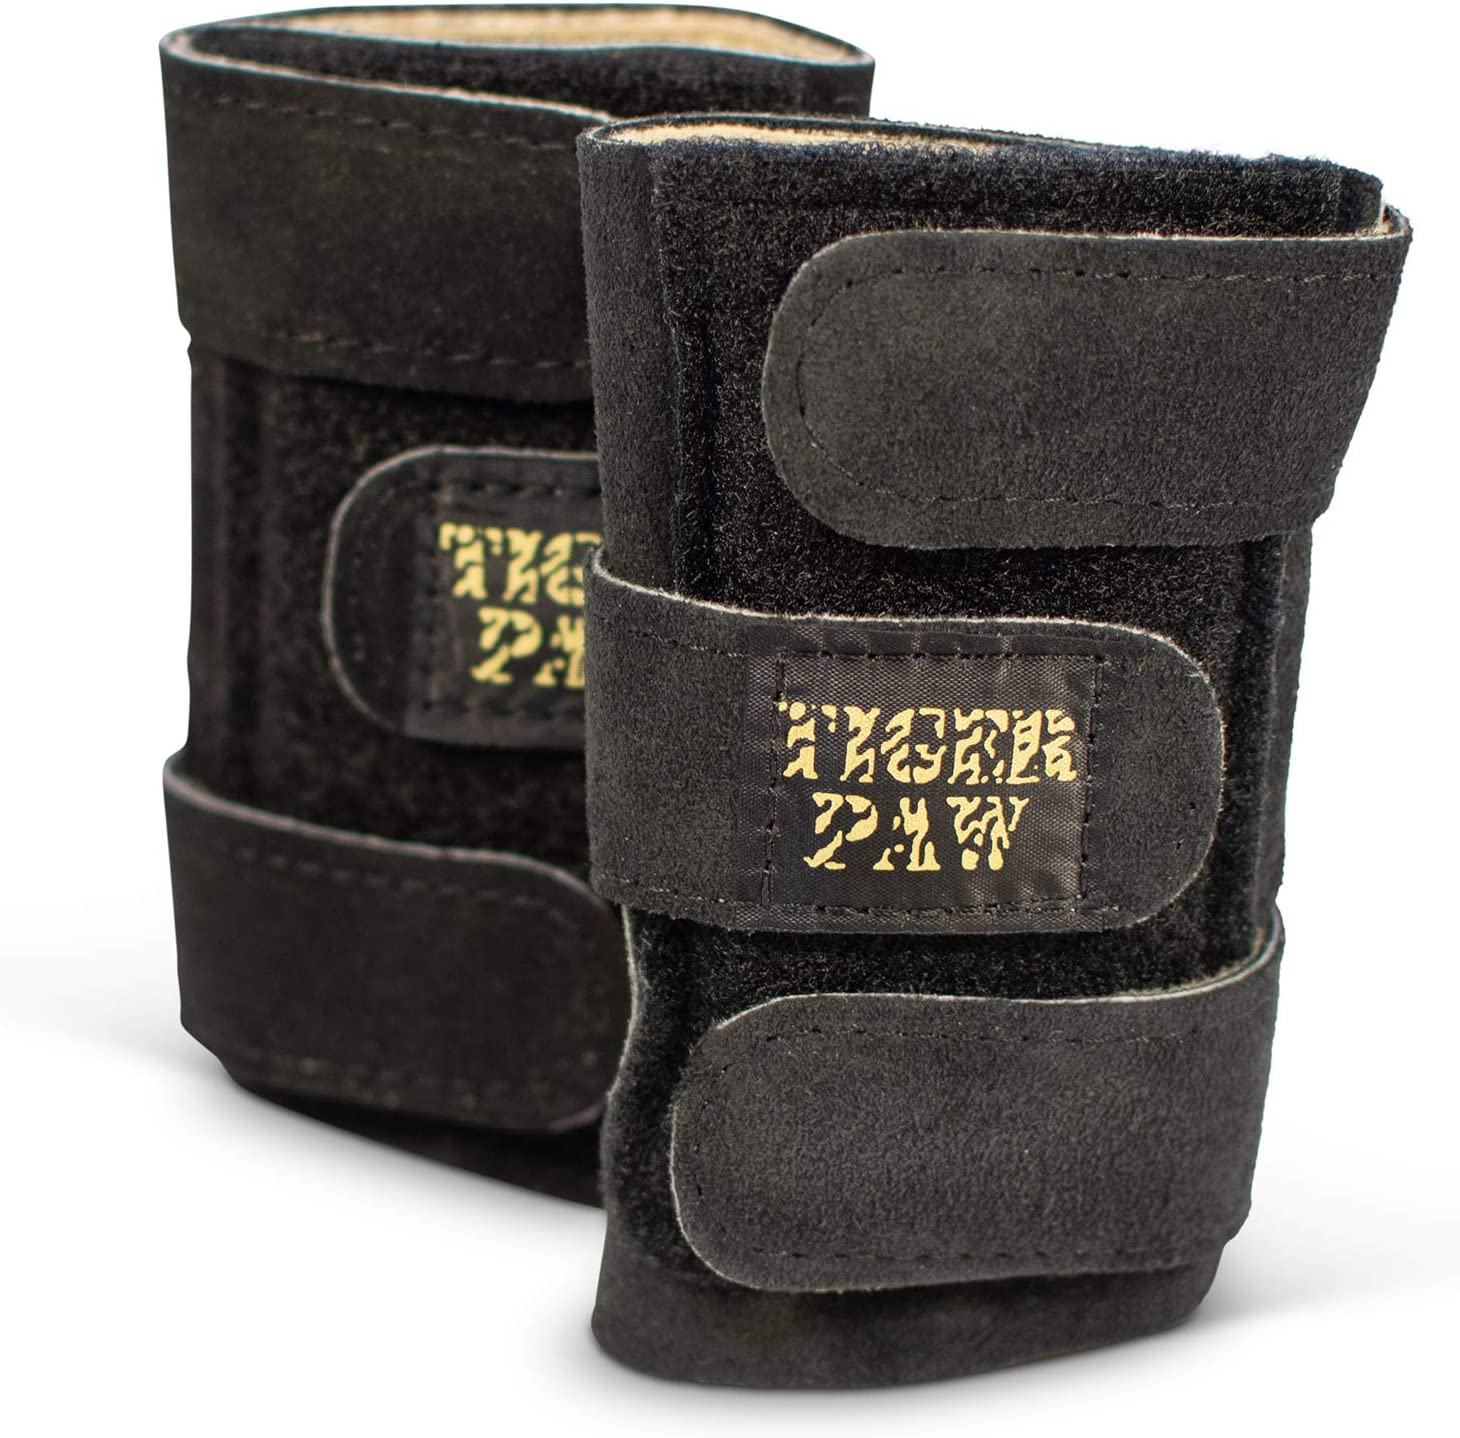 Variety of Colors to Chose from Sold in Pairs US Glove Offering Suede Tiger Paws